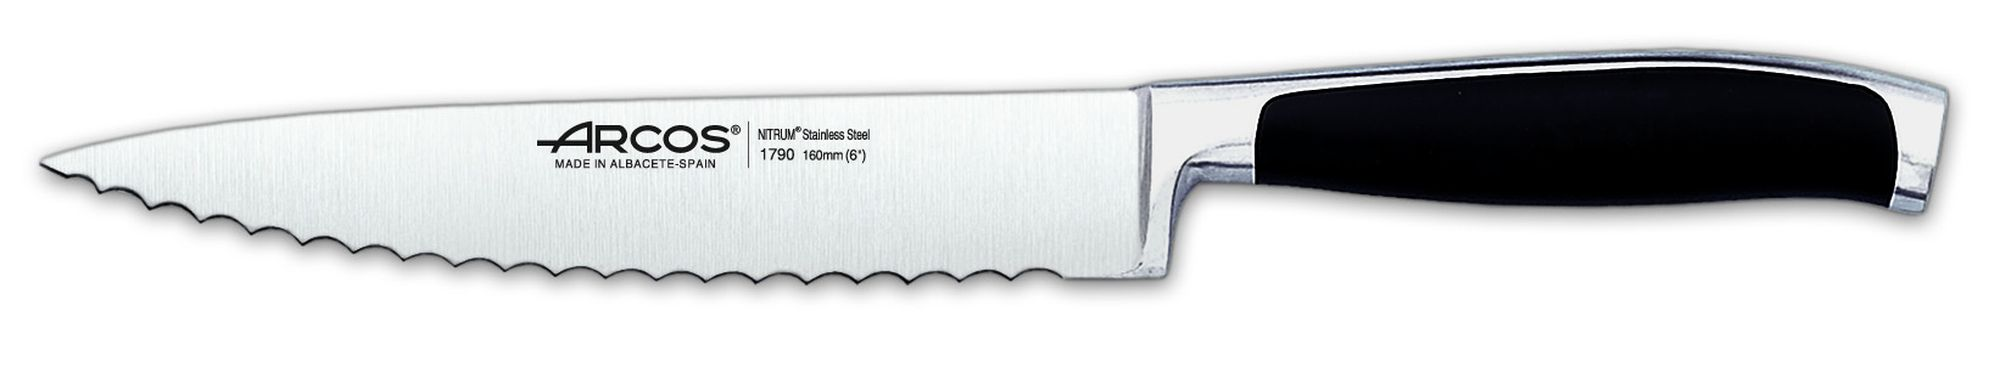 Kitchen Knife Arcos ref.: 179000